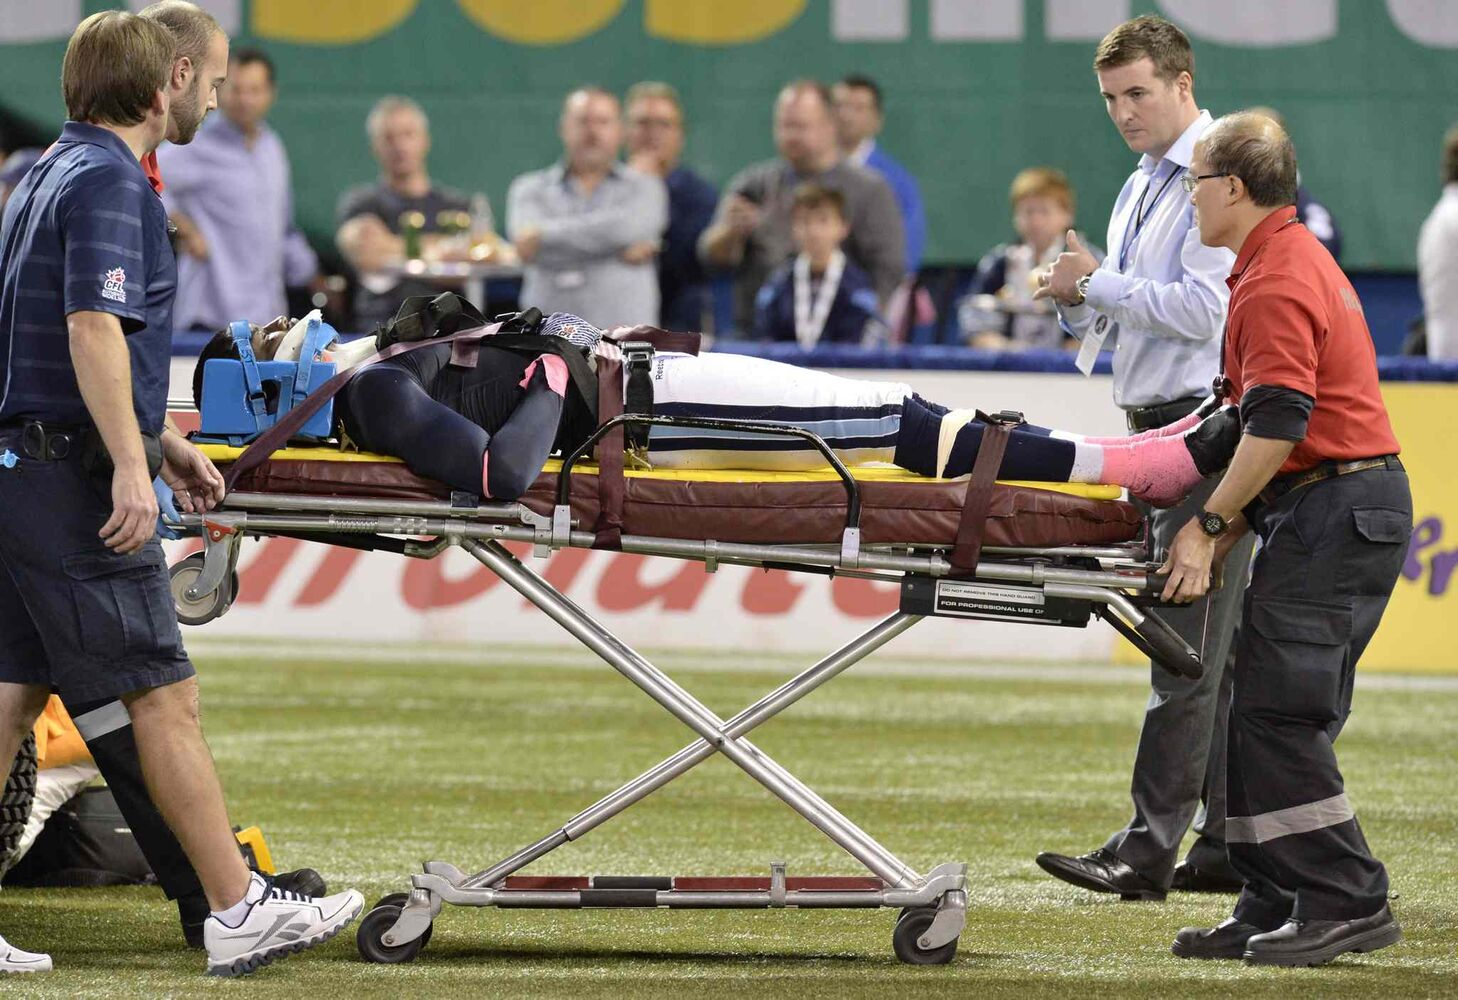 Toronto Argonauts defensive back Neiko Thorpe is taken off the field on a stretcher during the first quarter.